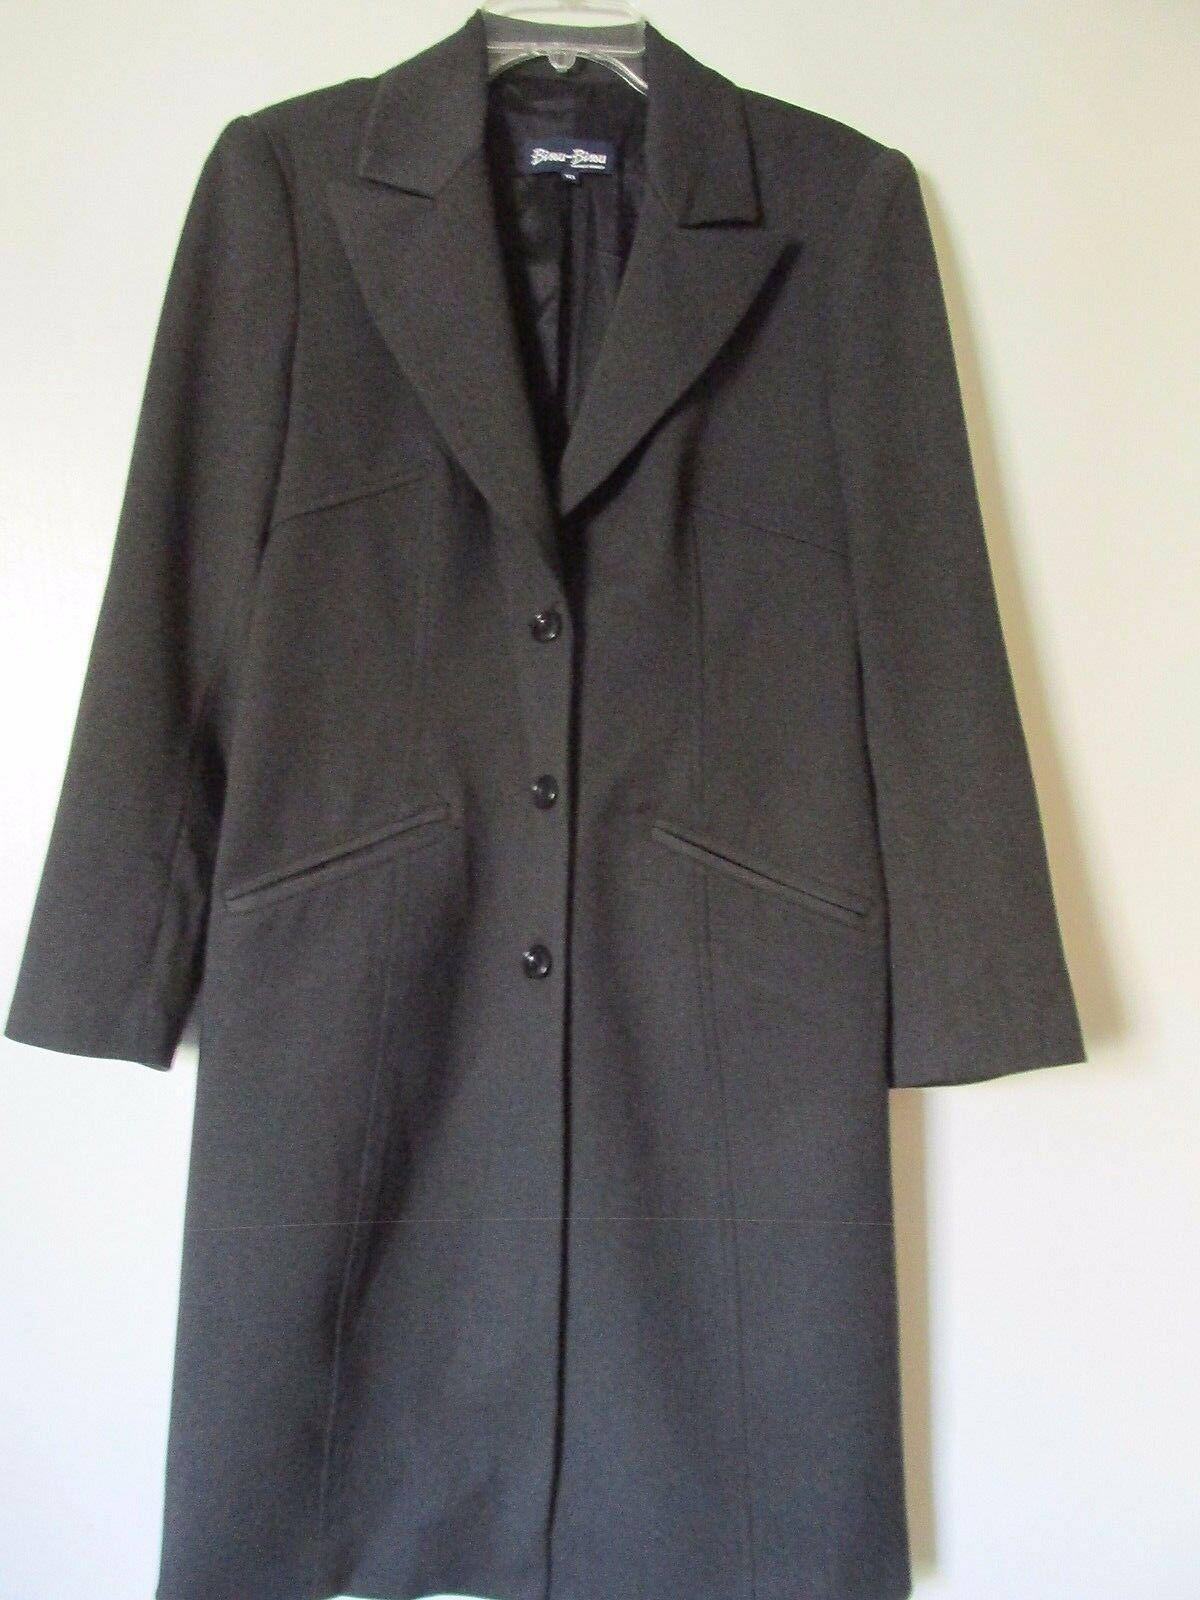 Bisou Bisou Michele Bohbot Charcoal Gray Button Front Duster Suit Jacket Size 10